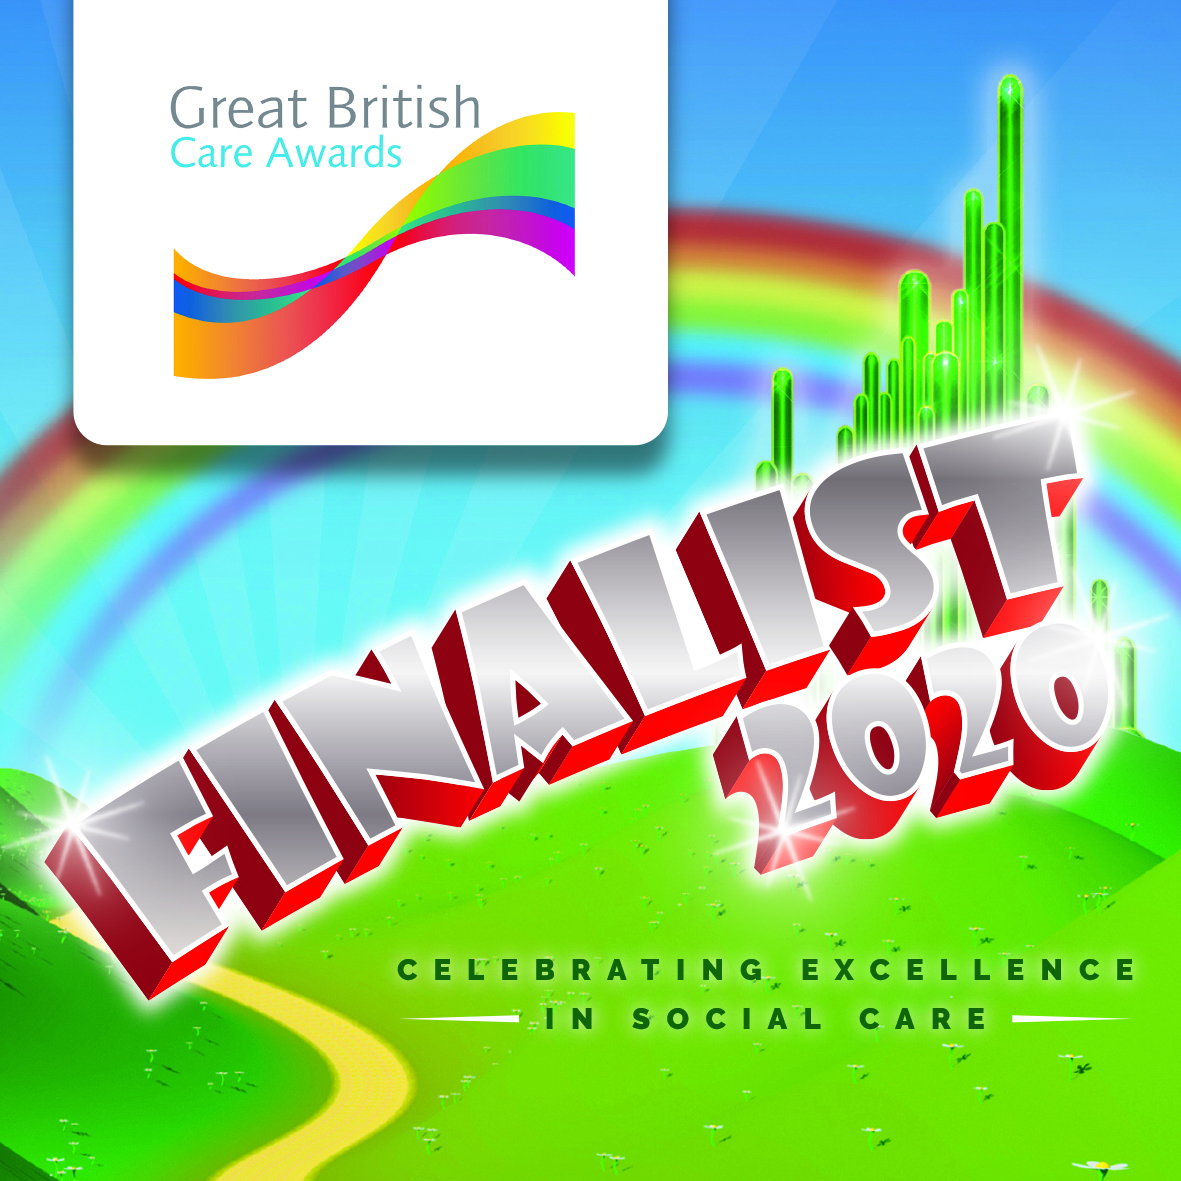 The Great British Care Awards